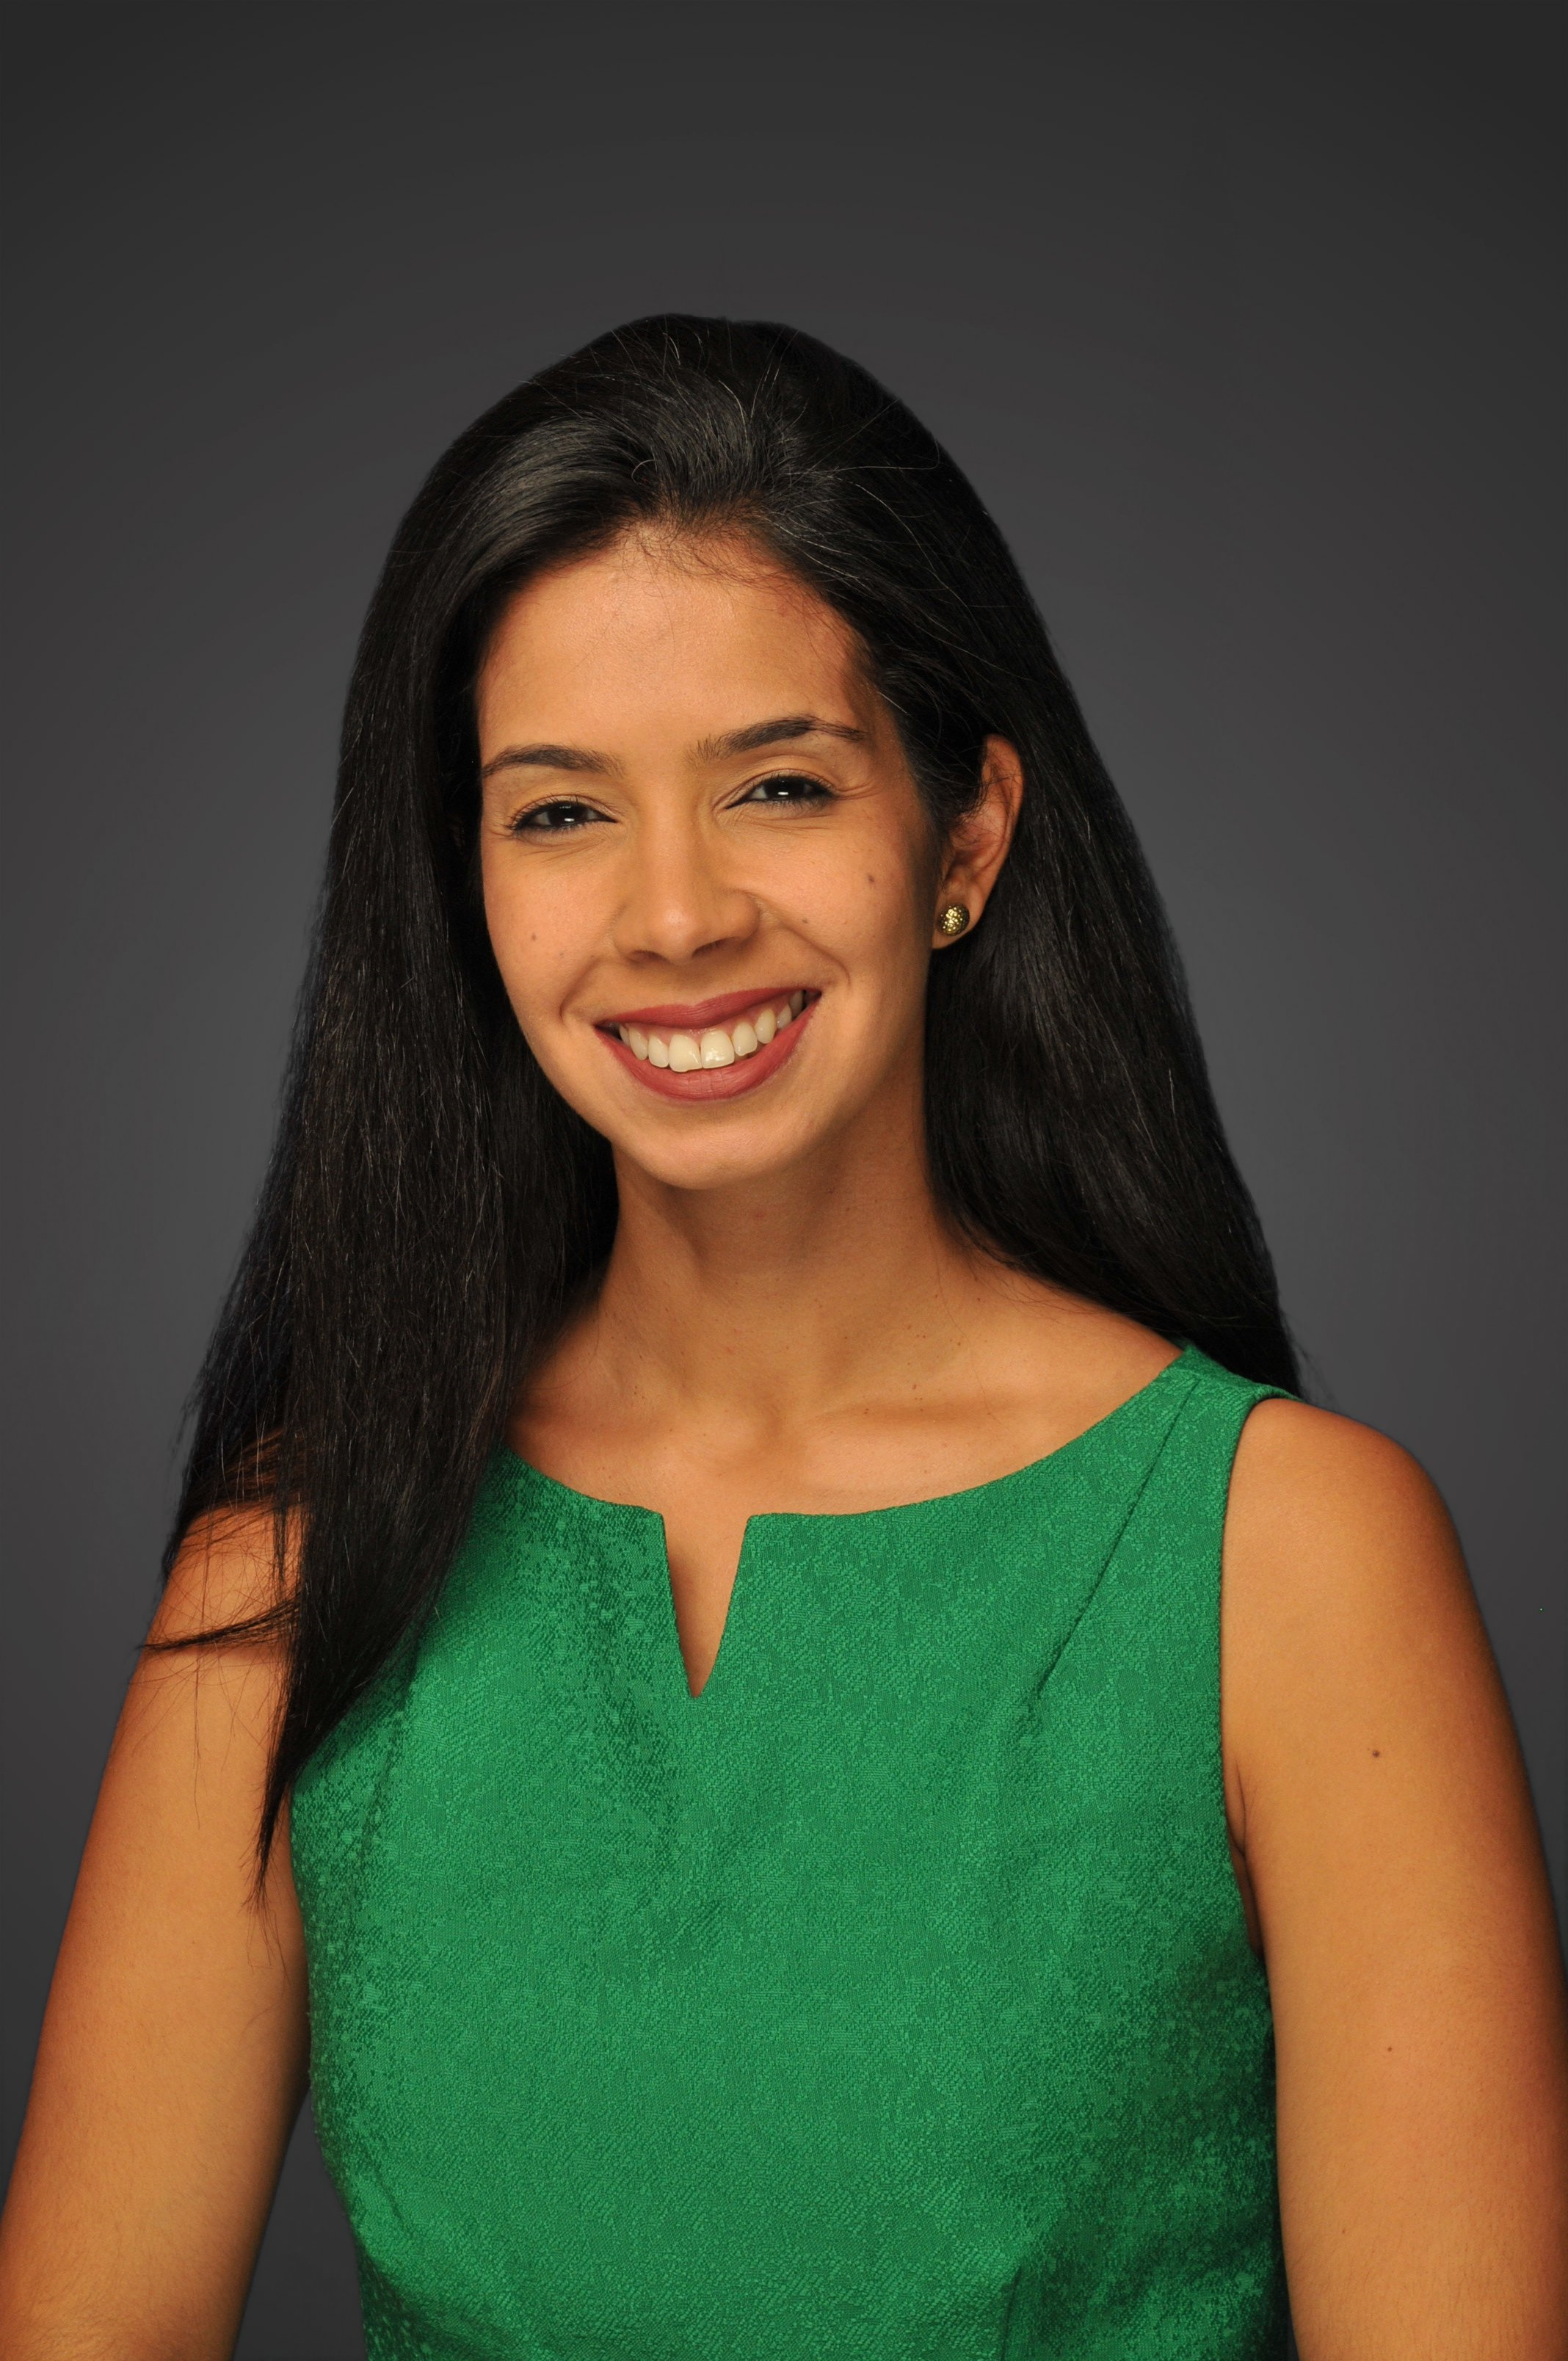 Jazmin Cabeza - Jazmin Cabeza is specializing in Finance and Global Business. Prior to Stern, Jazmin worked in Accenture Consulting for 7 years aligned to the Financial Services practice. Jazmin graduated from the University of Central Florida in 2009 with a B.S./M.S degree in Industrial Engineering.